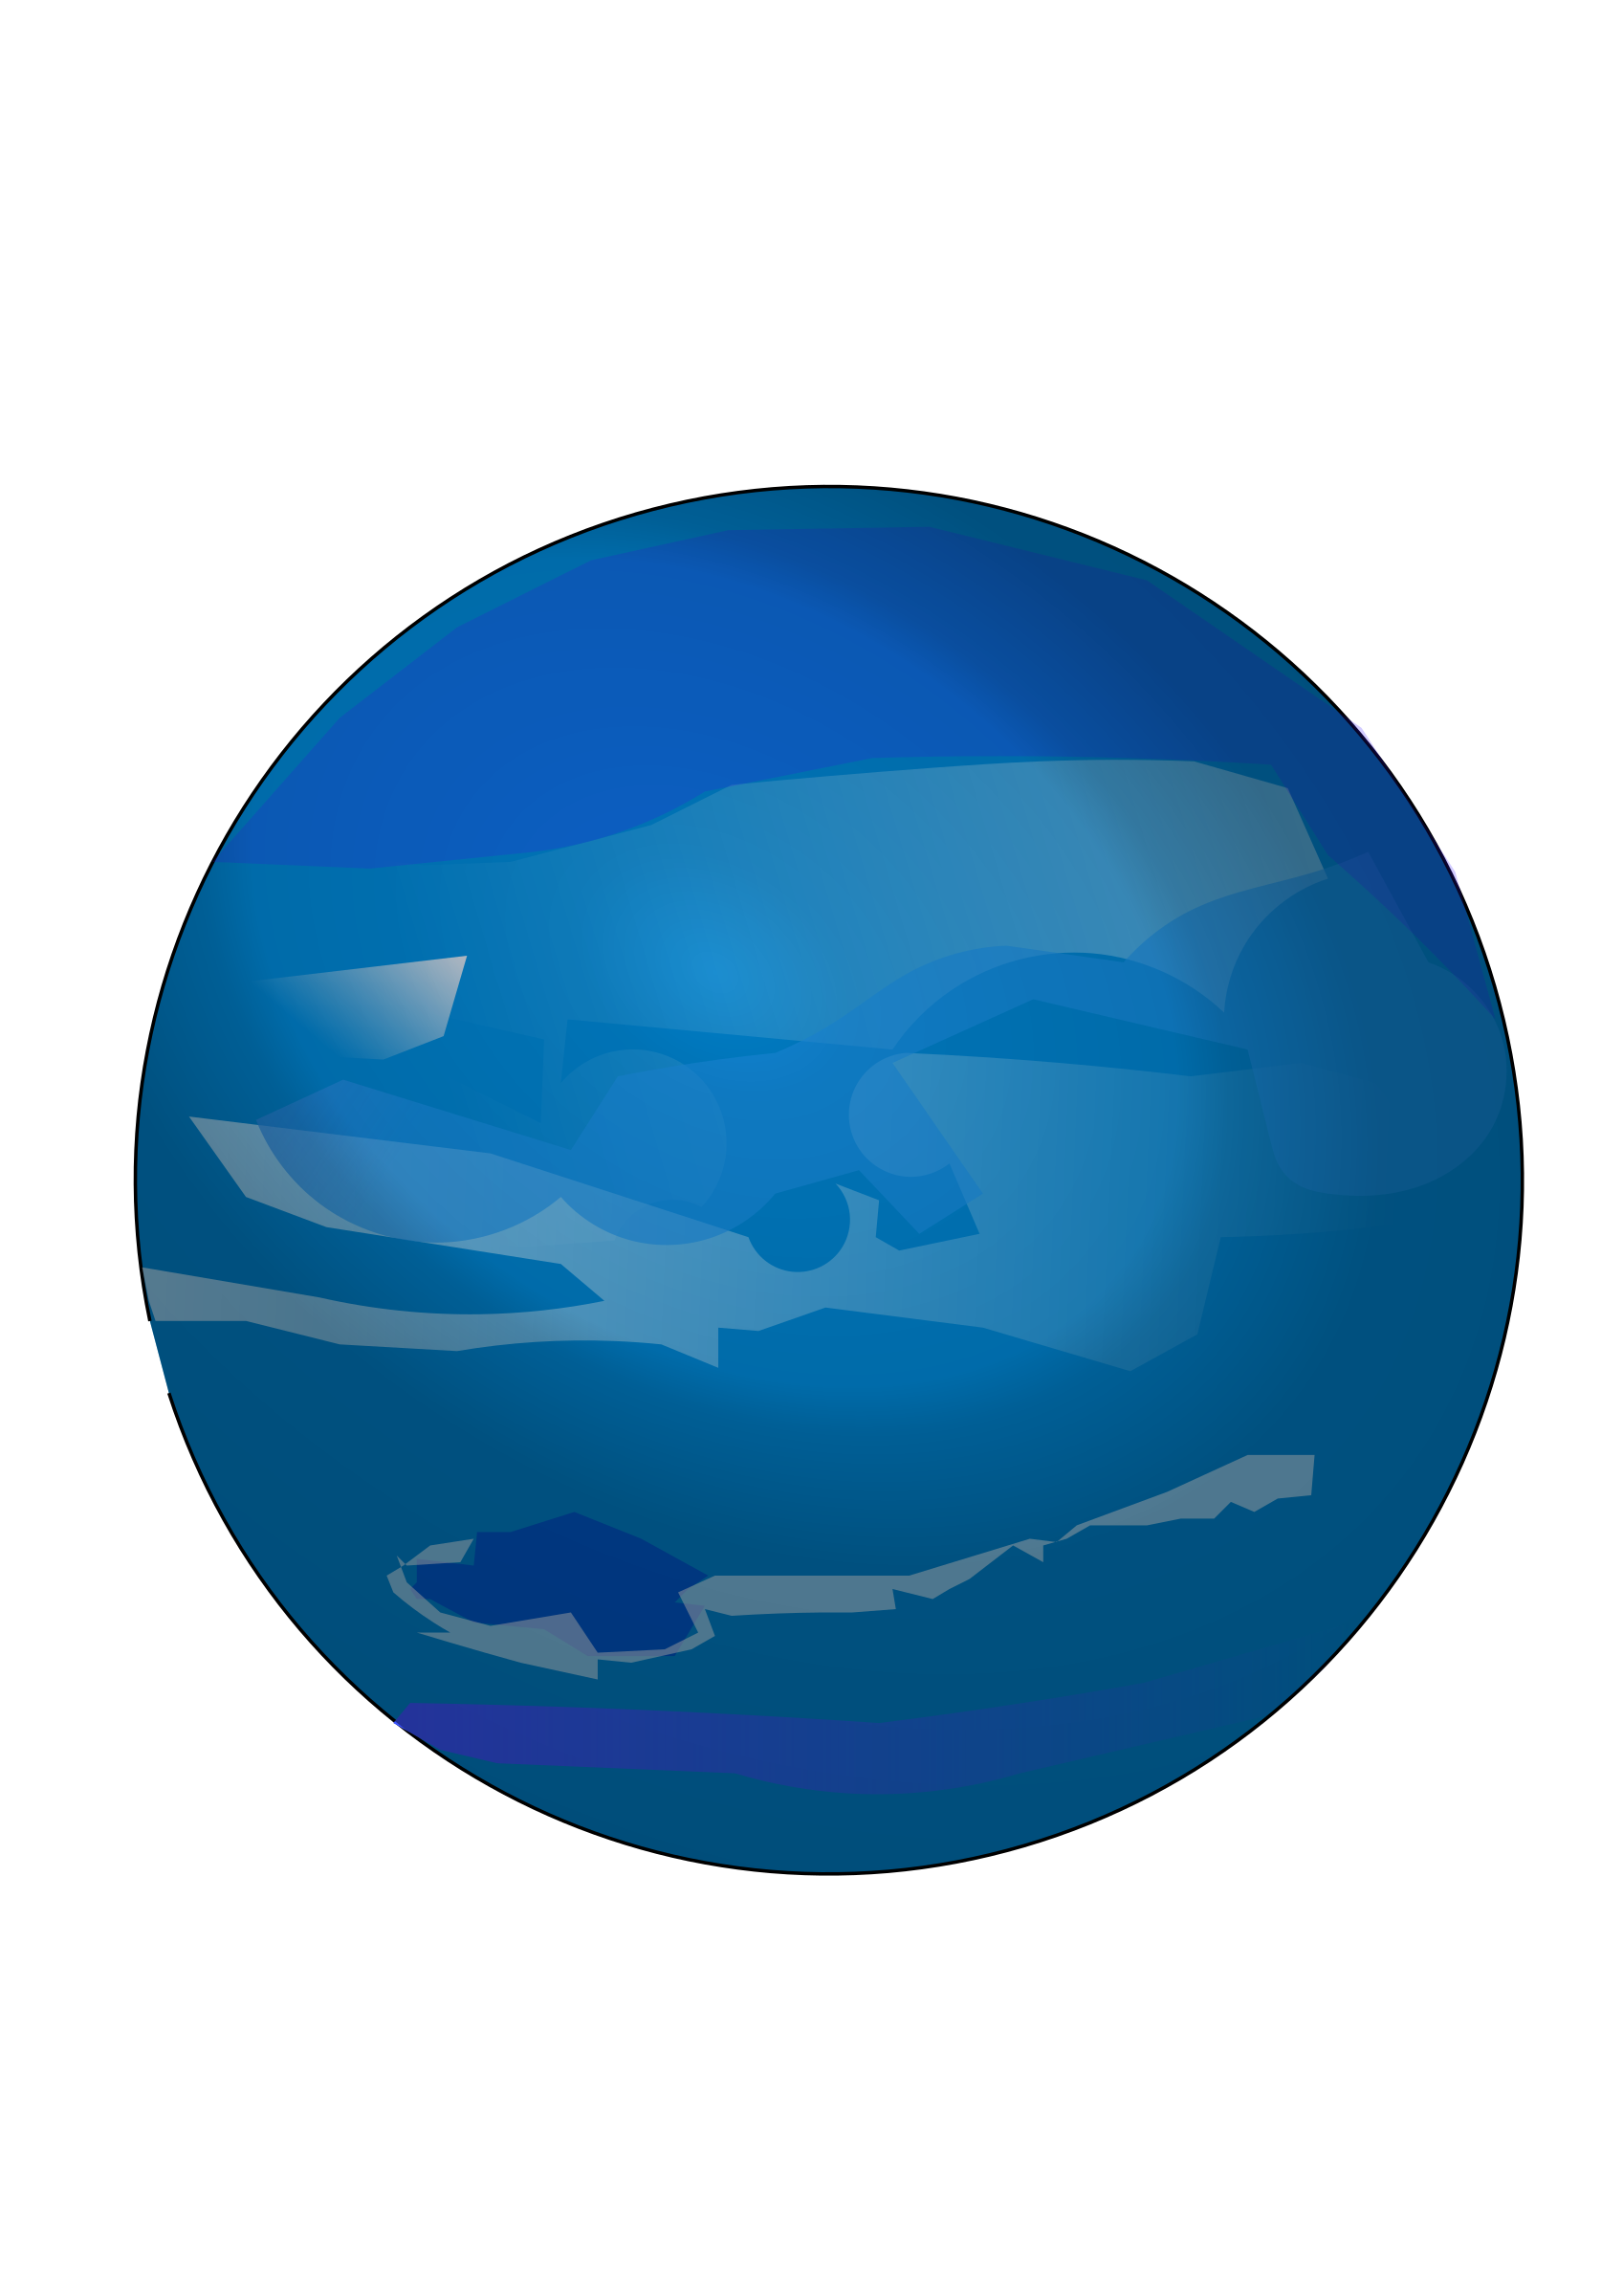 Neptune cartoon png. Planet icons free and